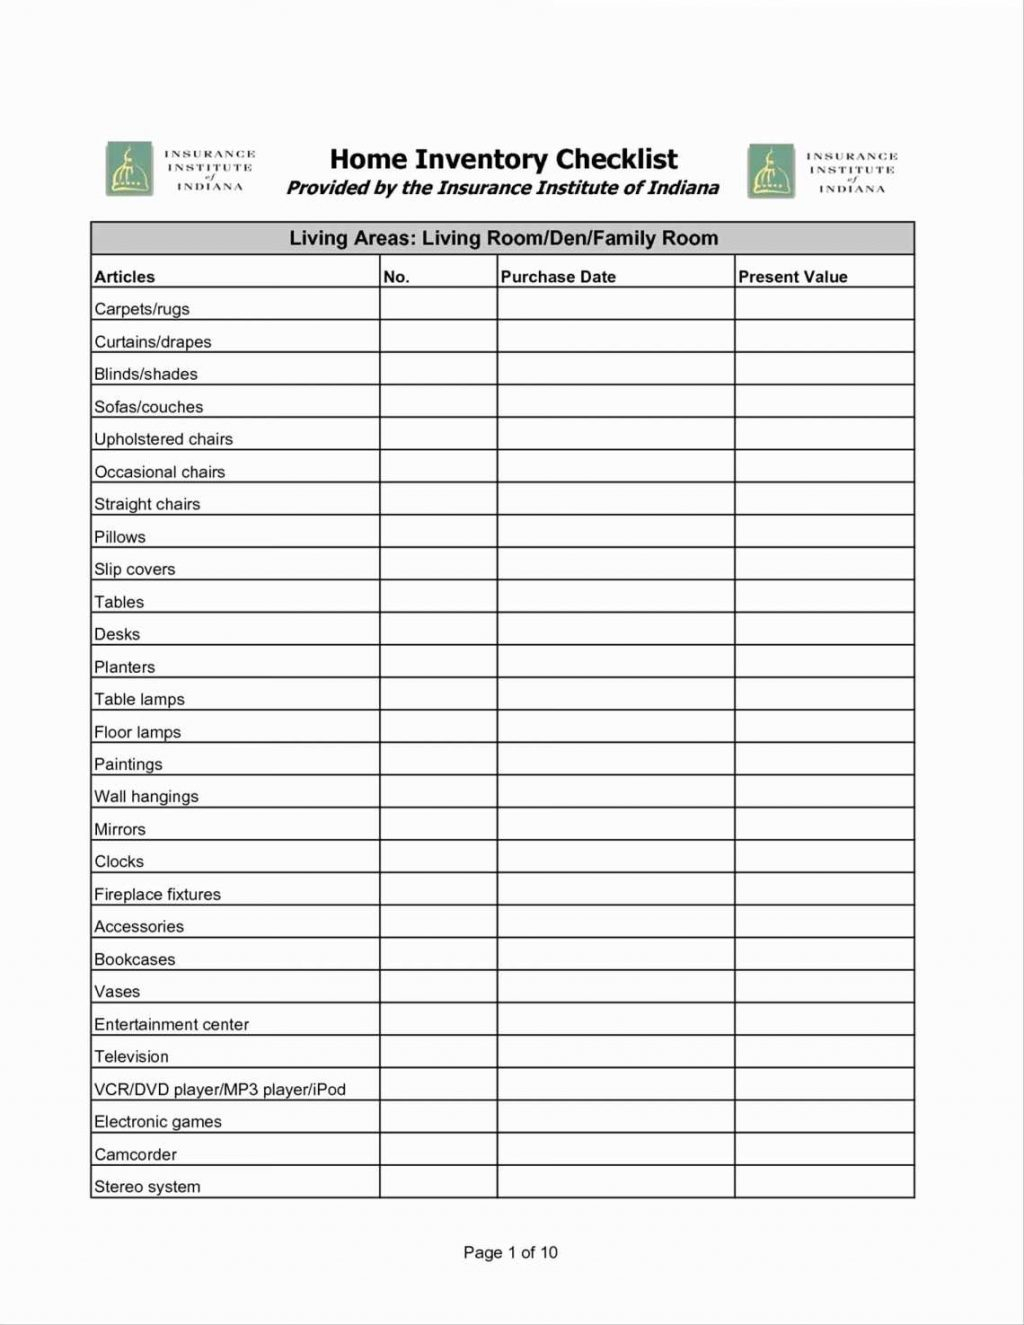 Bakery Inventory Worksheets Printable Worksheets And Activities For Teachers Parents Tutors And Homeschool Families